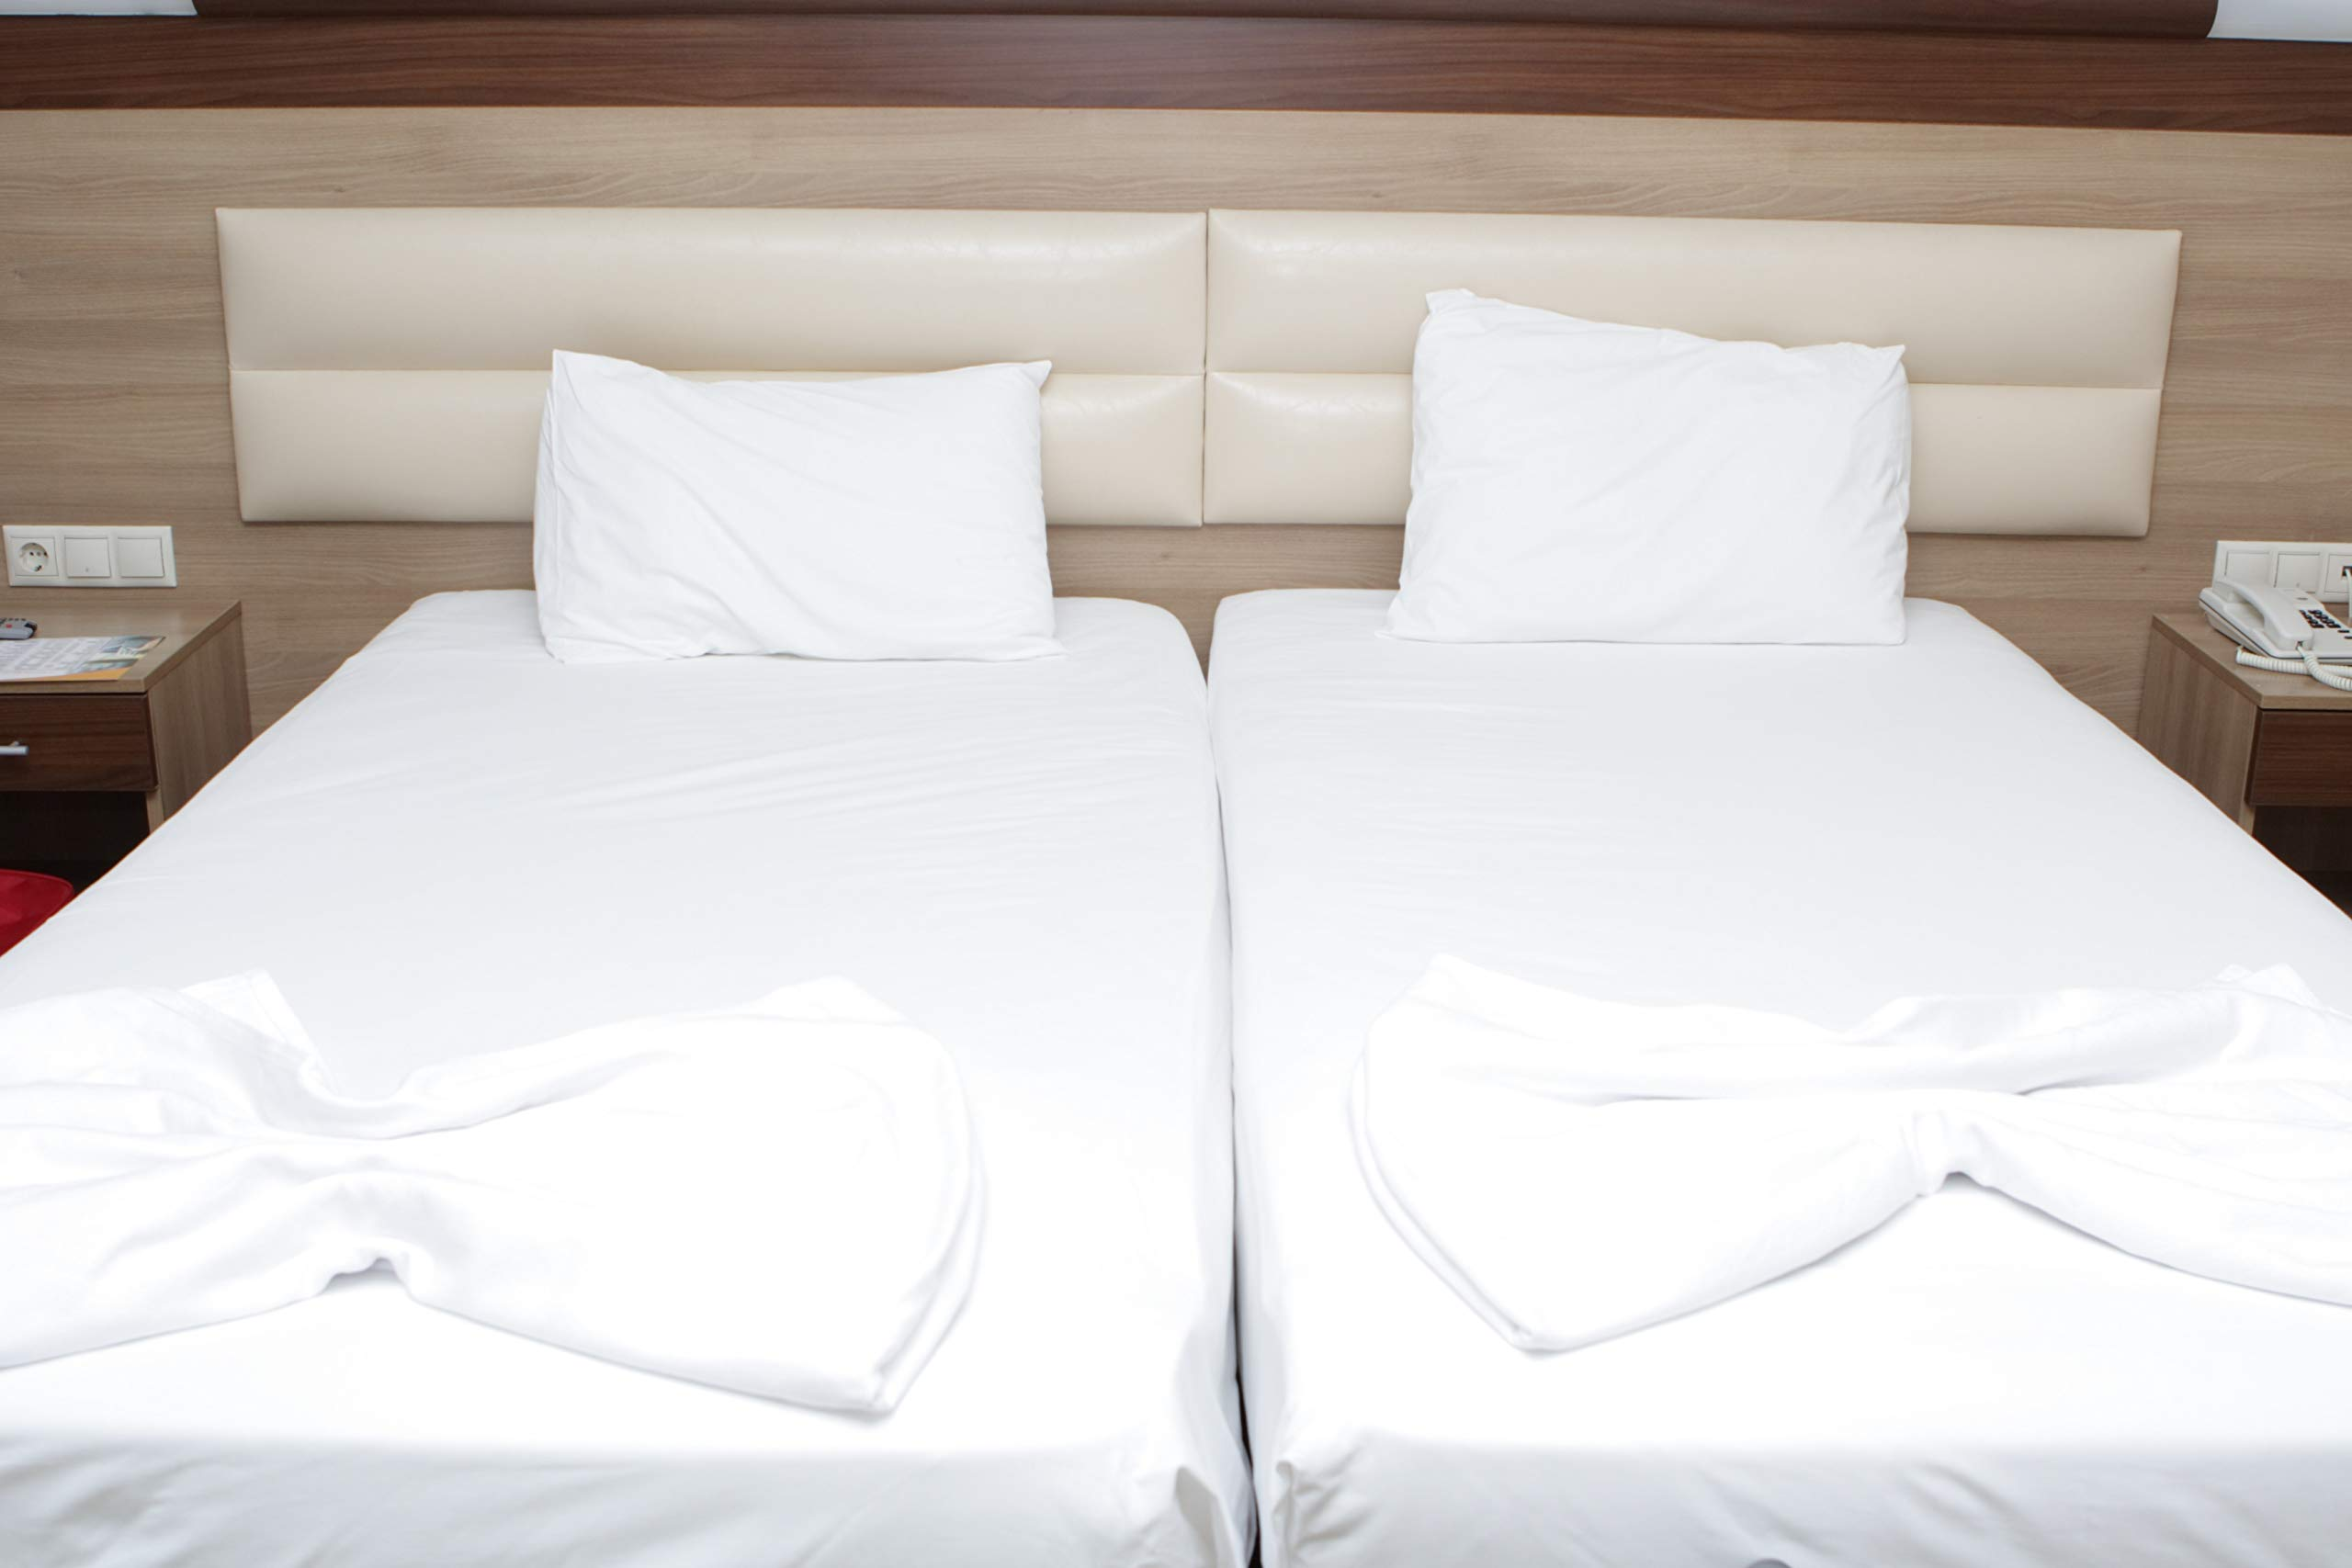 Atlas 3 Percale Fitted Bed Sheets, Twin XL, White 36x84x12 with 12'' Deep Pocket, T180 Hotel Grade Sheet